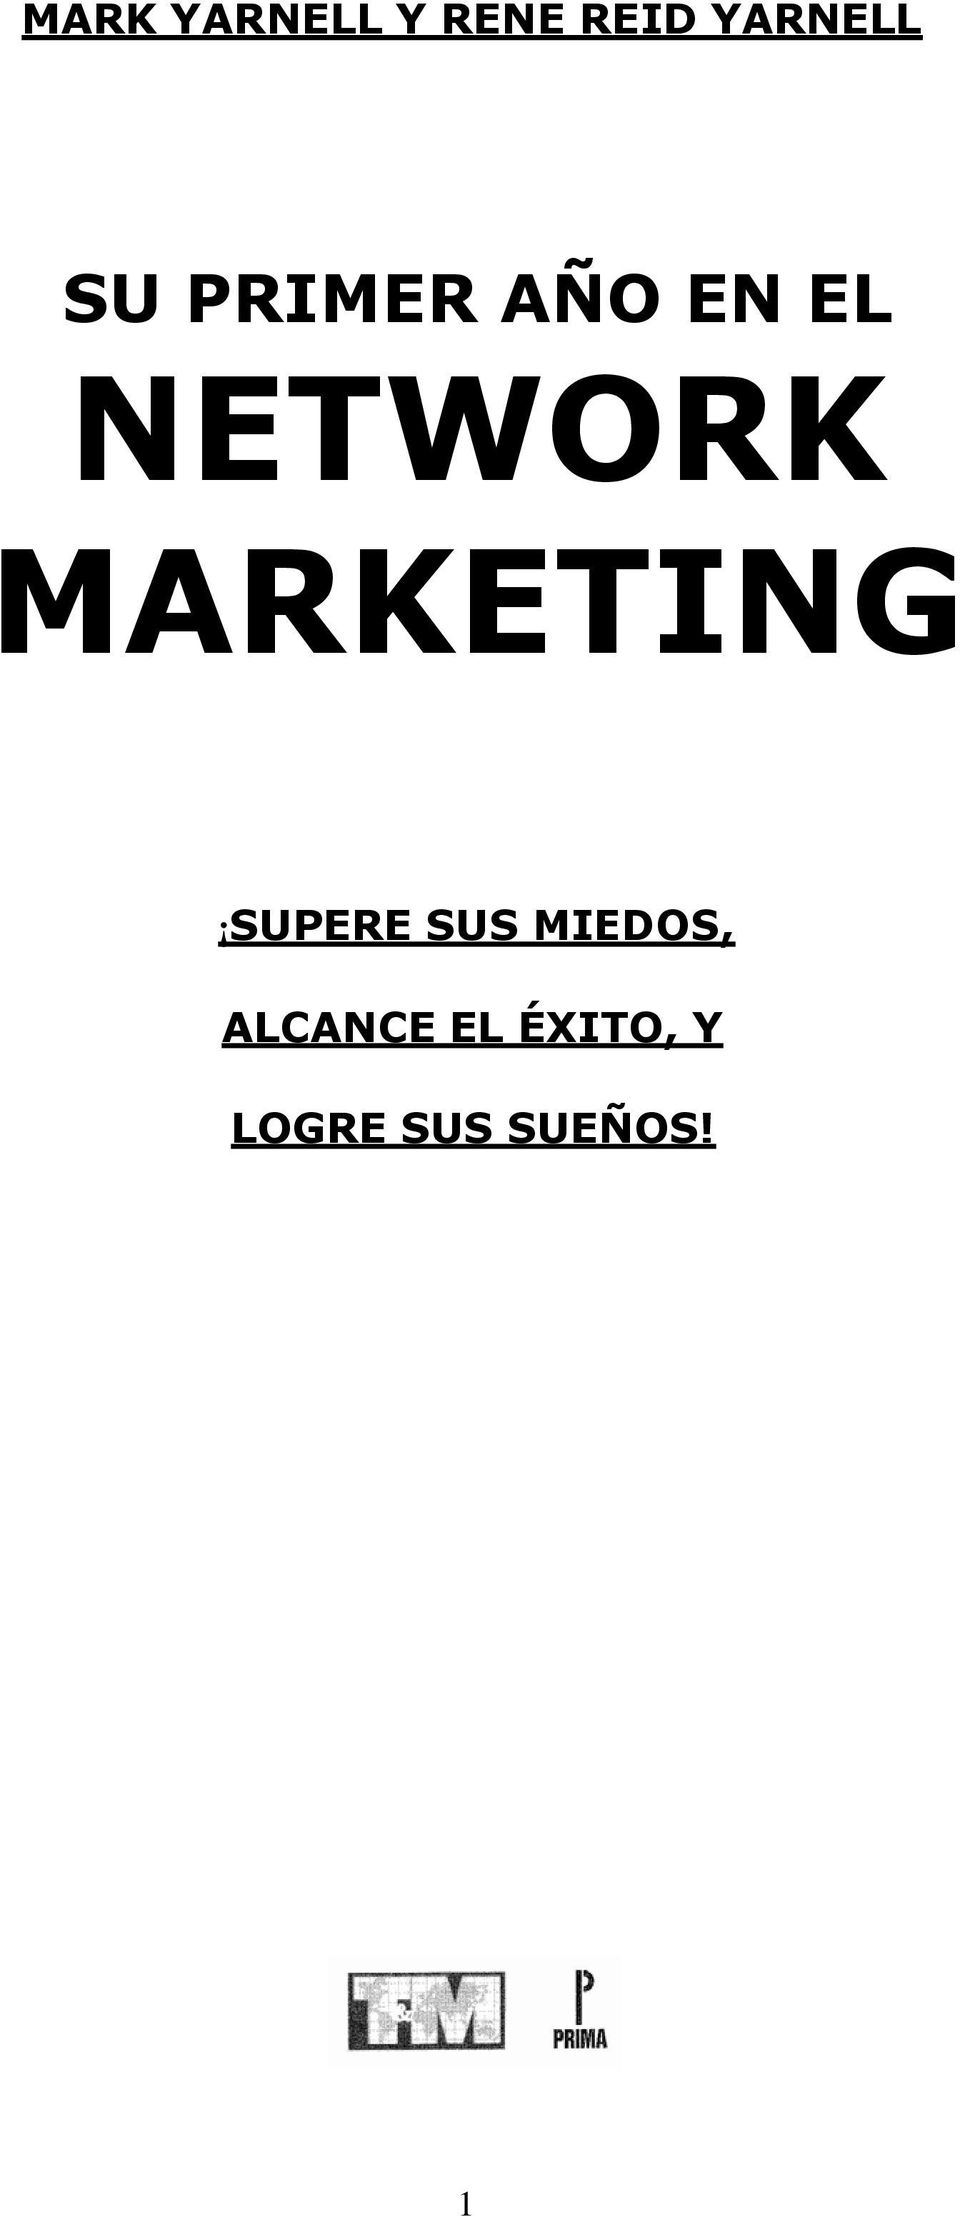 MARKETING SUPERE SUS MIEDOS,